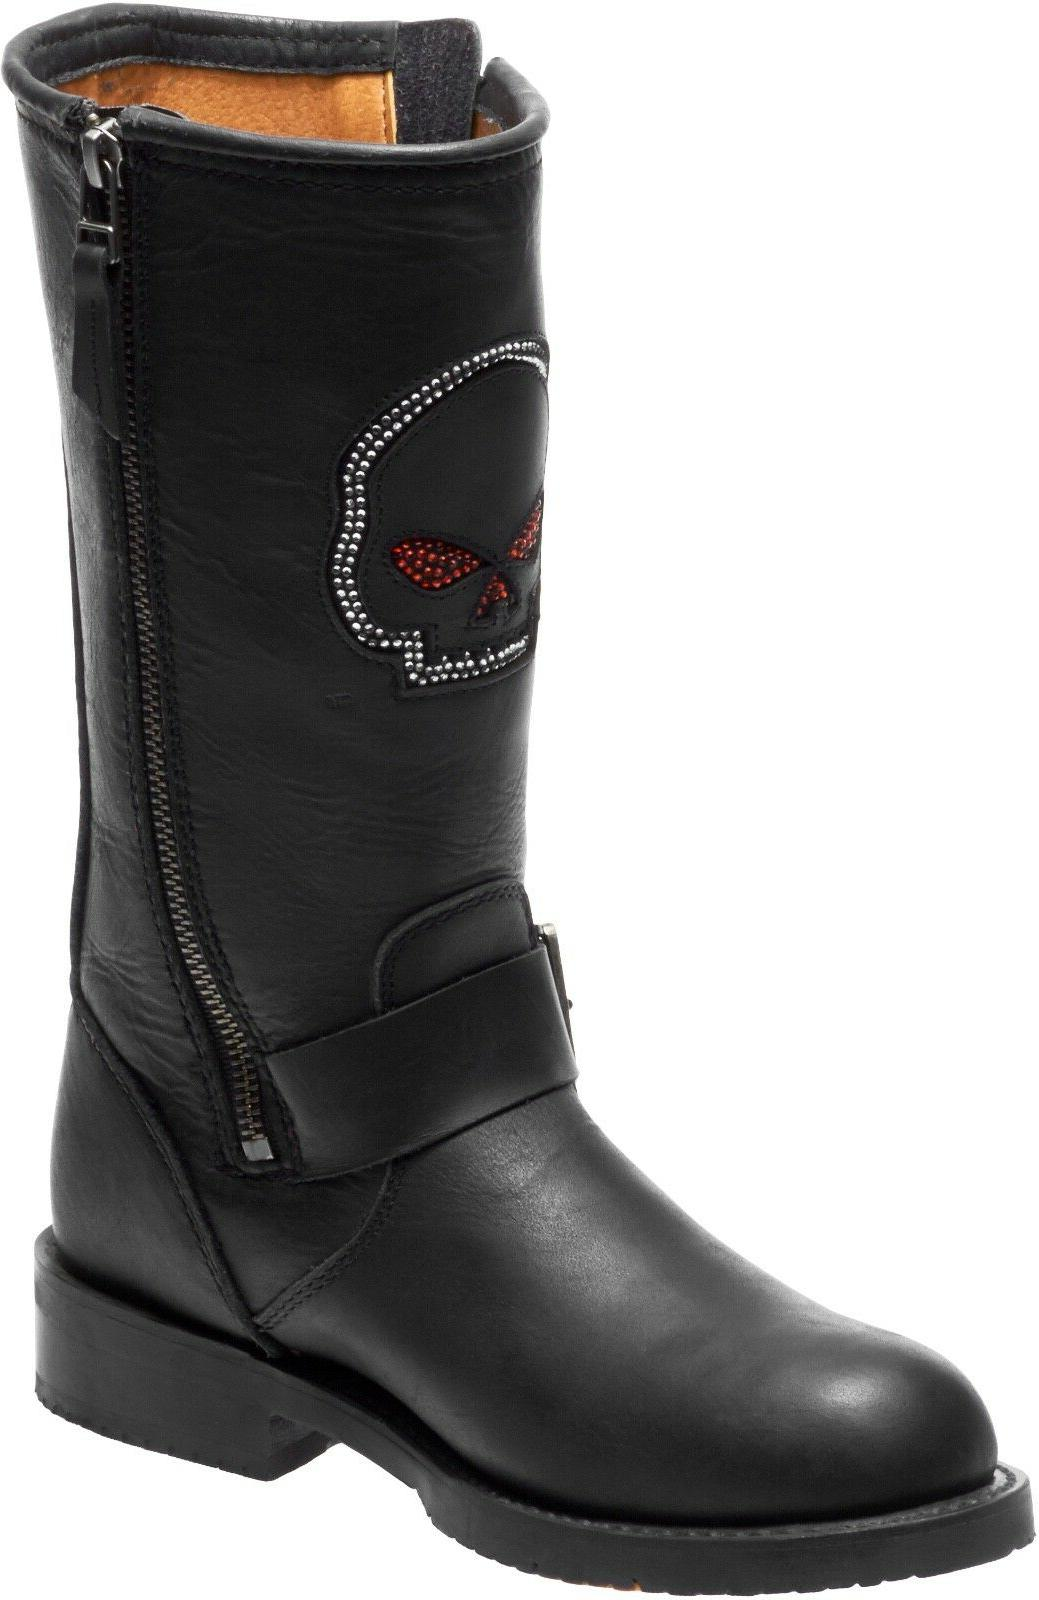 NEW HARLEY-DAVIDSON WOMEN'S MOTORCYCLE BOOTS D87134